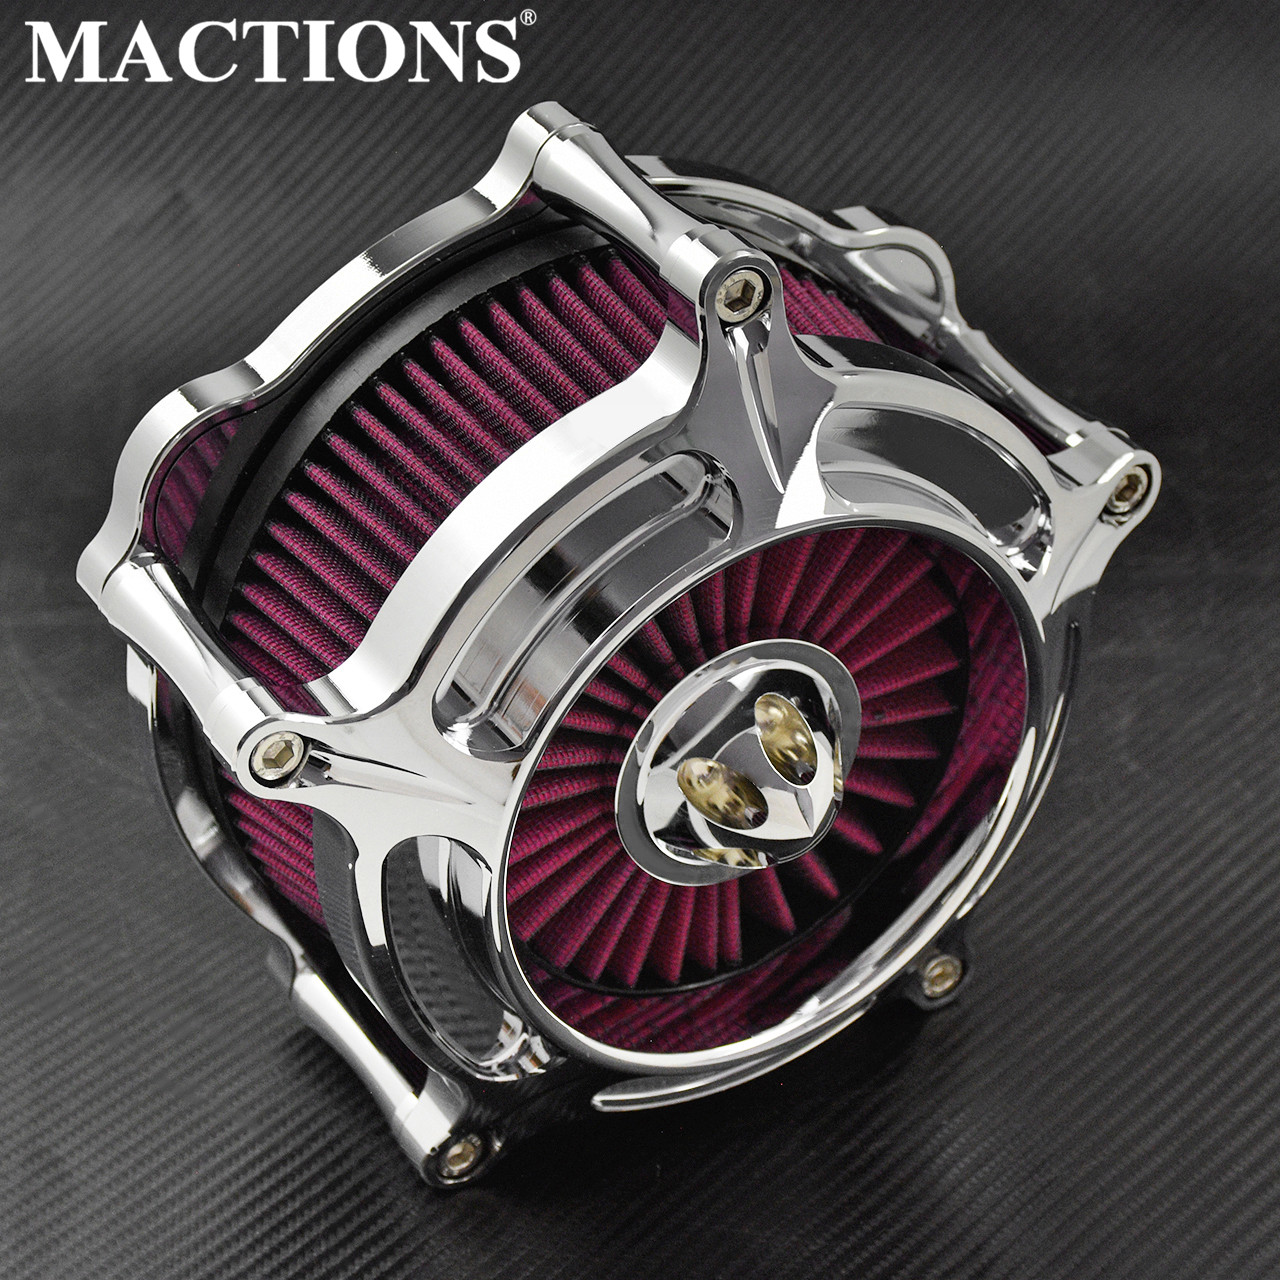 MACTIONS Motorcycle Chrome Air Cleaner Air Filter For Harley Touring Street Road Glide Sportster 1200 883